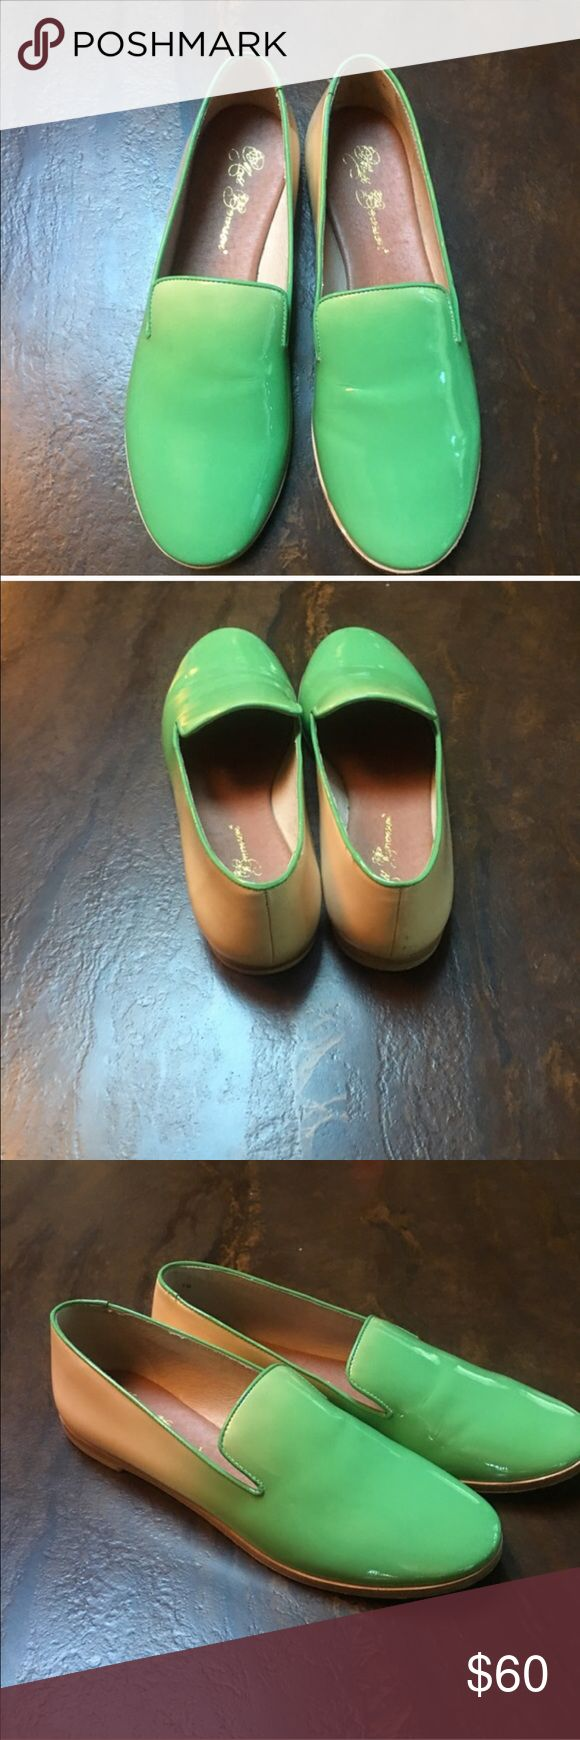 Matt Bernson patent leather green/tan ombré flats Patent leather mules worn once. Leather sole. Green/tan ombré pattern. Matt Bernson Shoes Flats & Loafers